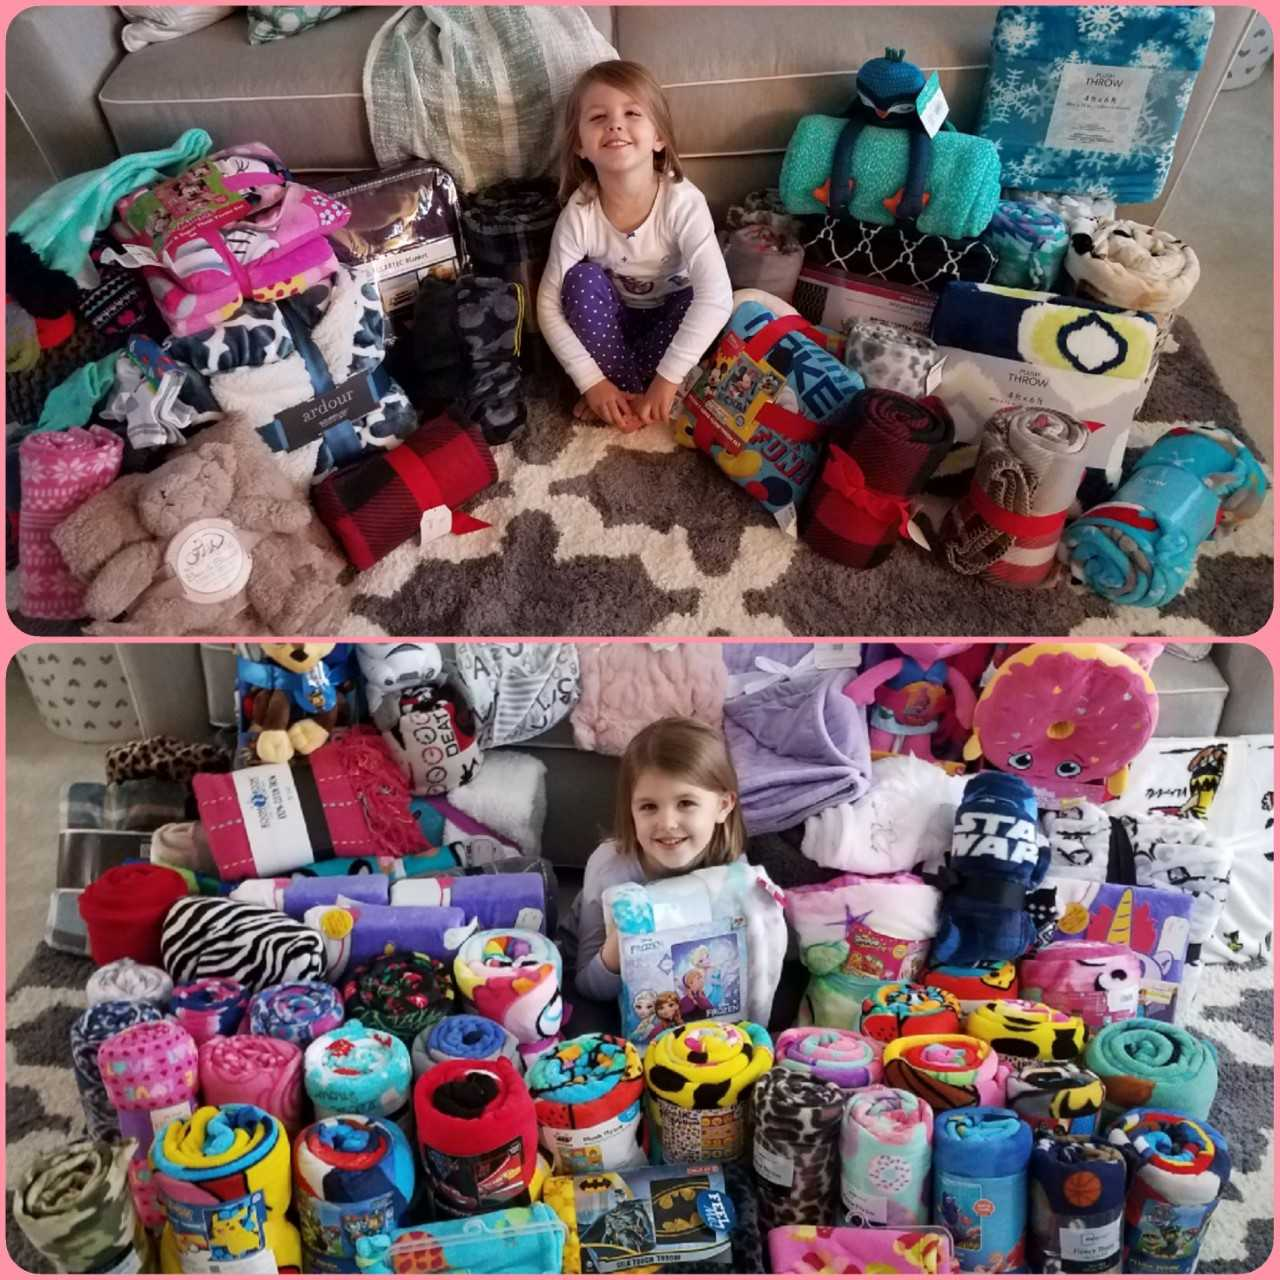 5 year old girl foregoes birthday gifts asks for blankets for sick kids instead